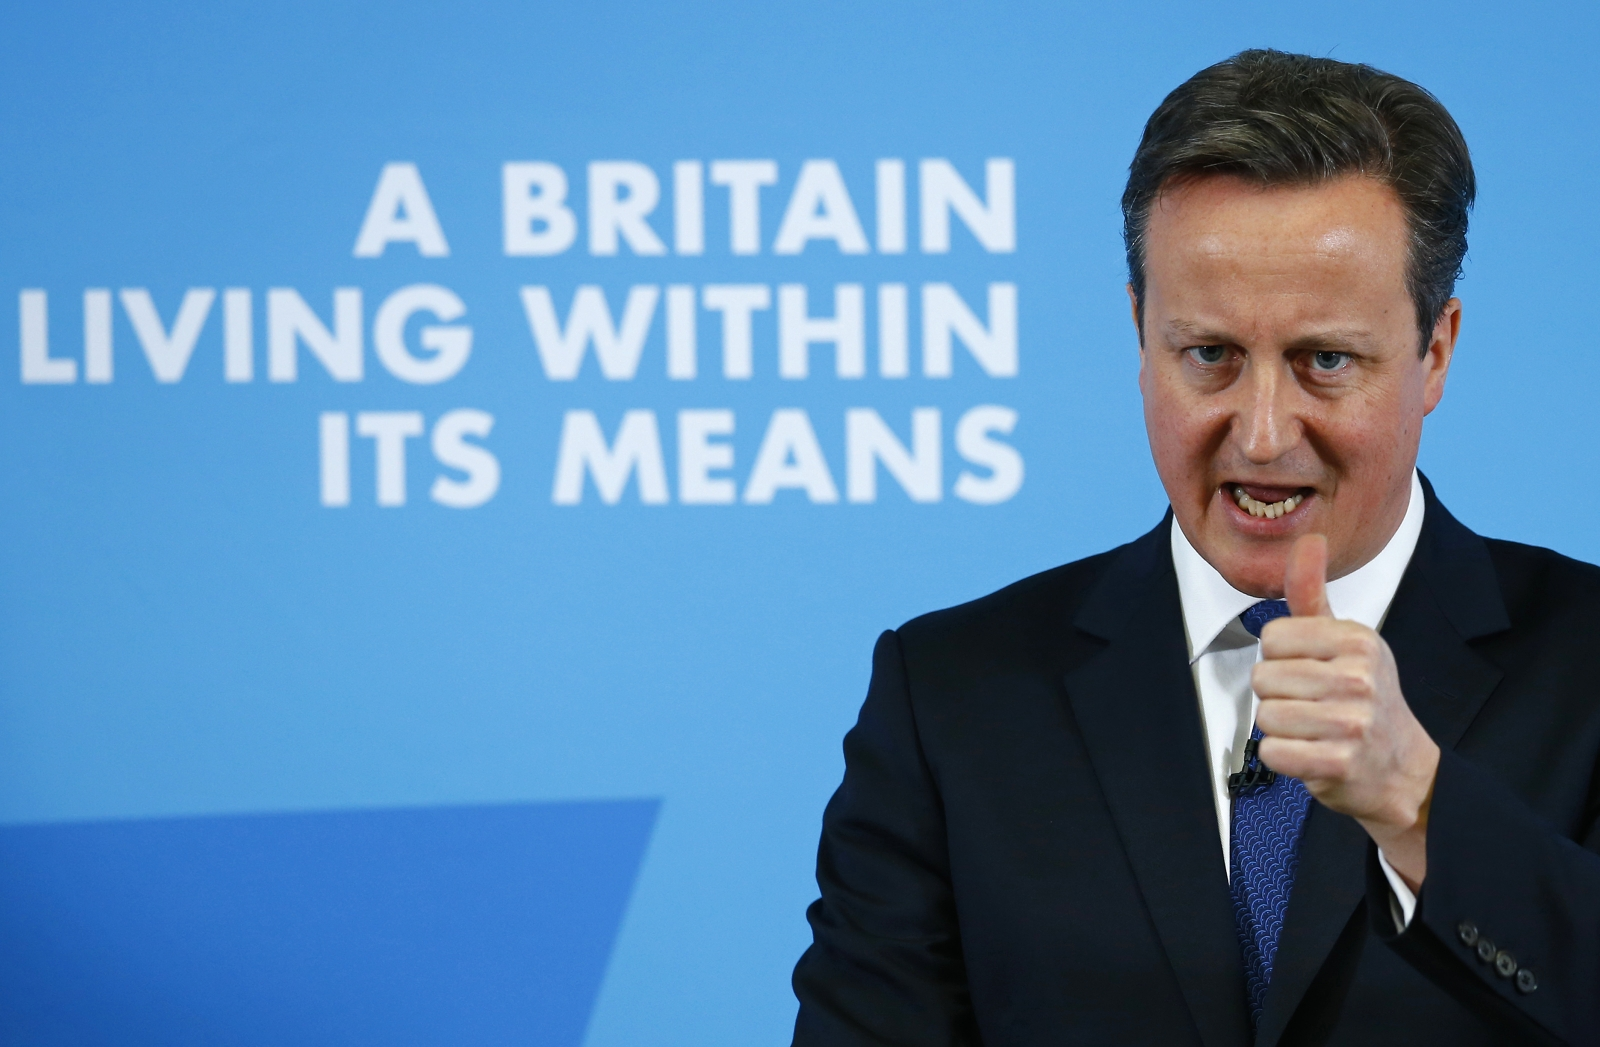 David Cameron Encryption Ban cashing in fear after Charlie Hebdo massacre